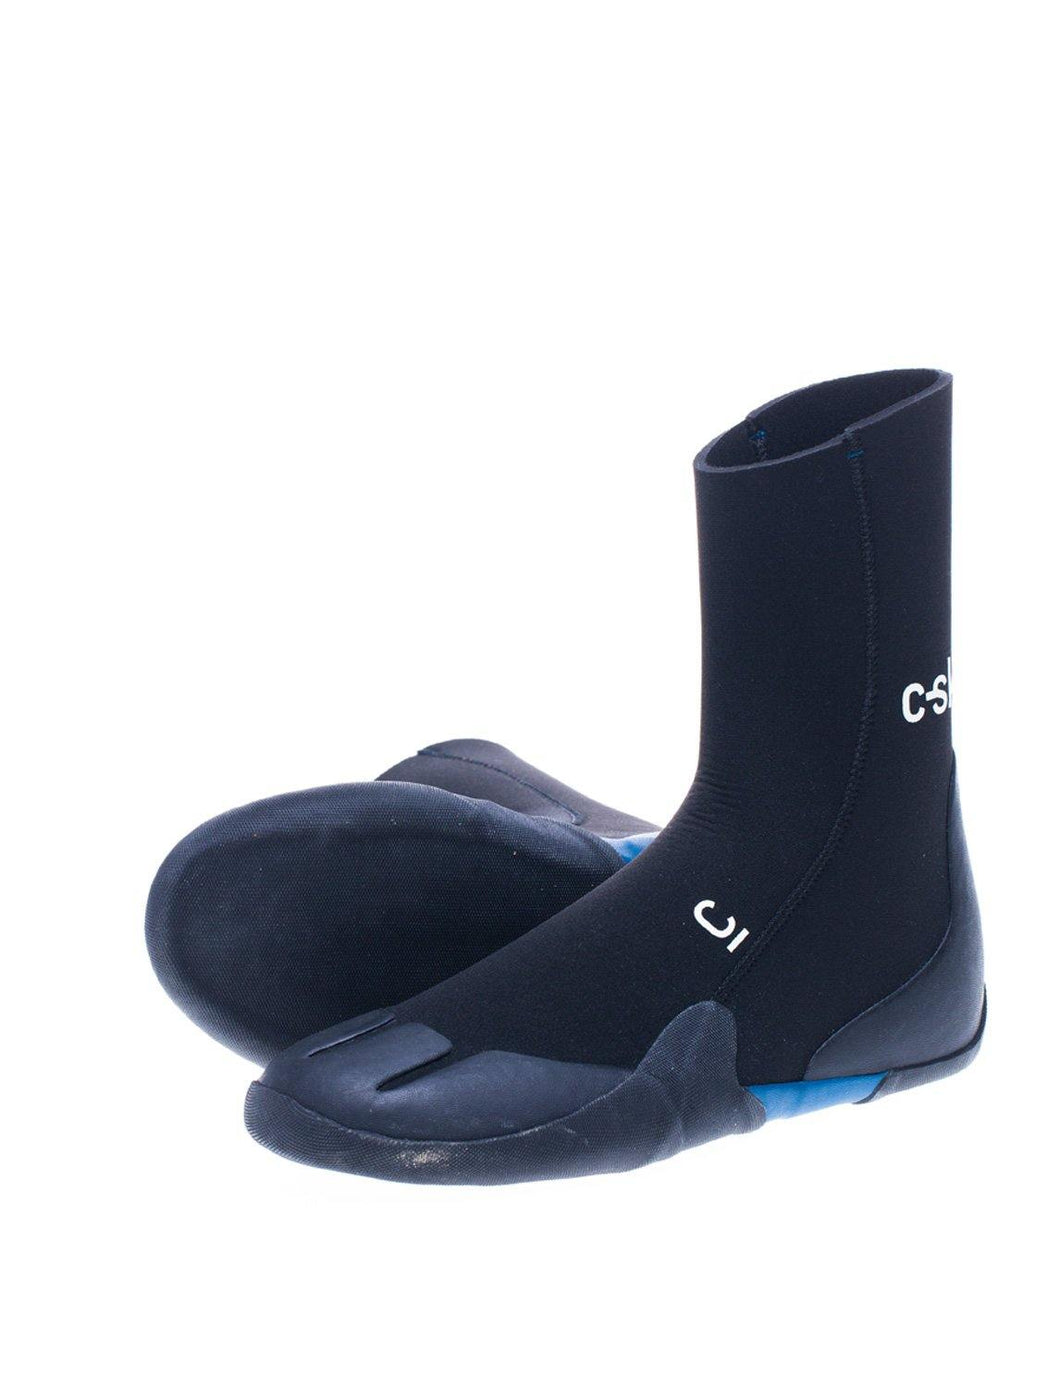 C-Skins Legend 5mm Adult Round Toe Boots - Black/Ocean Blue - Stokedstore